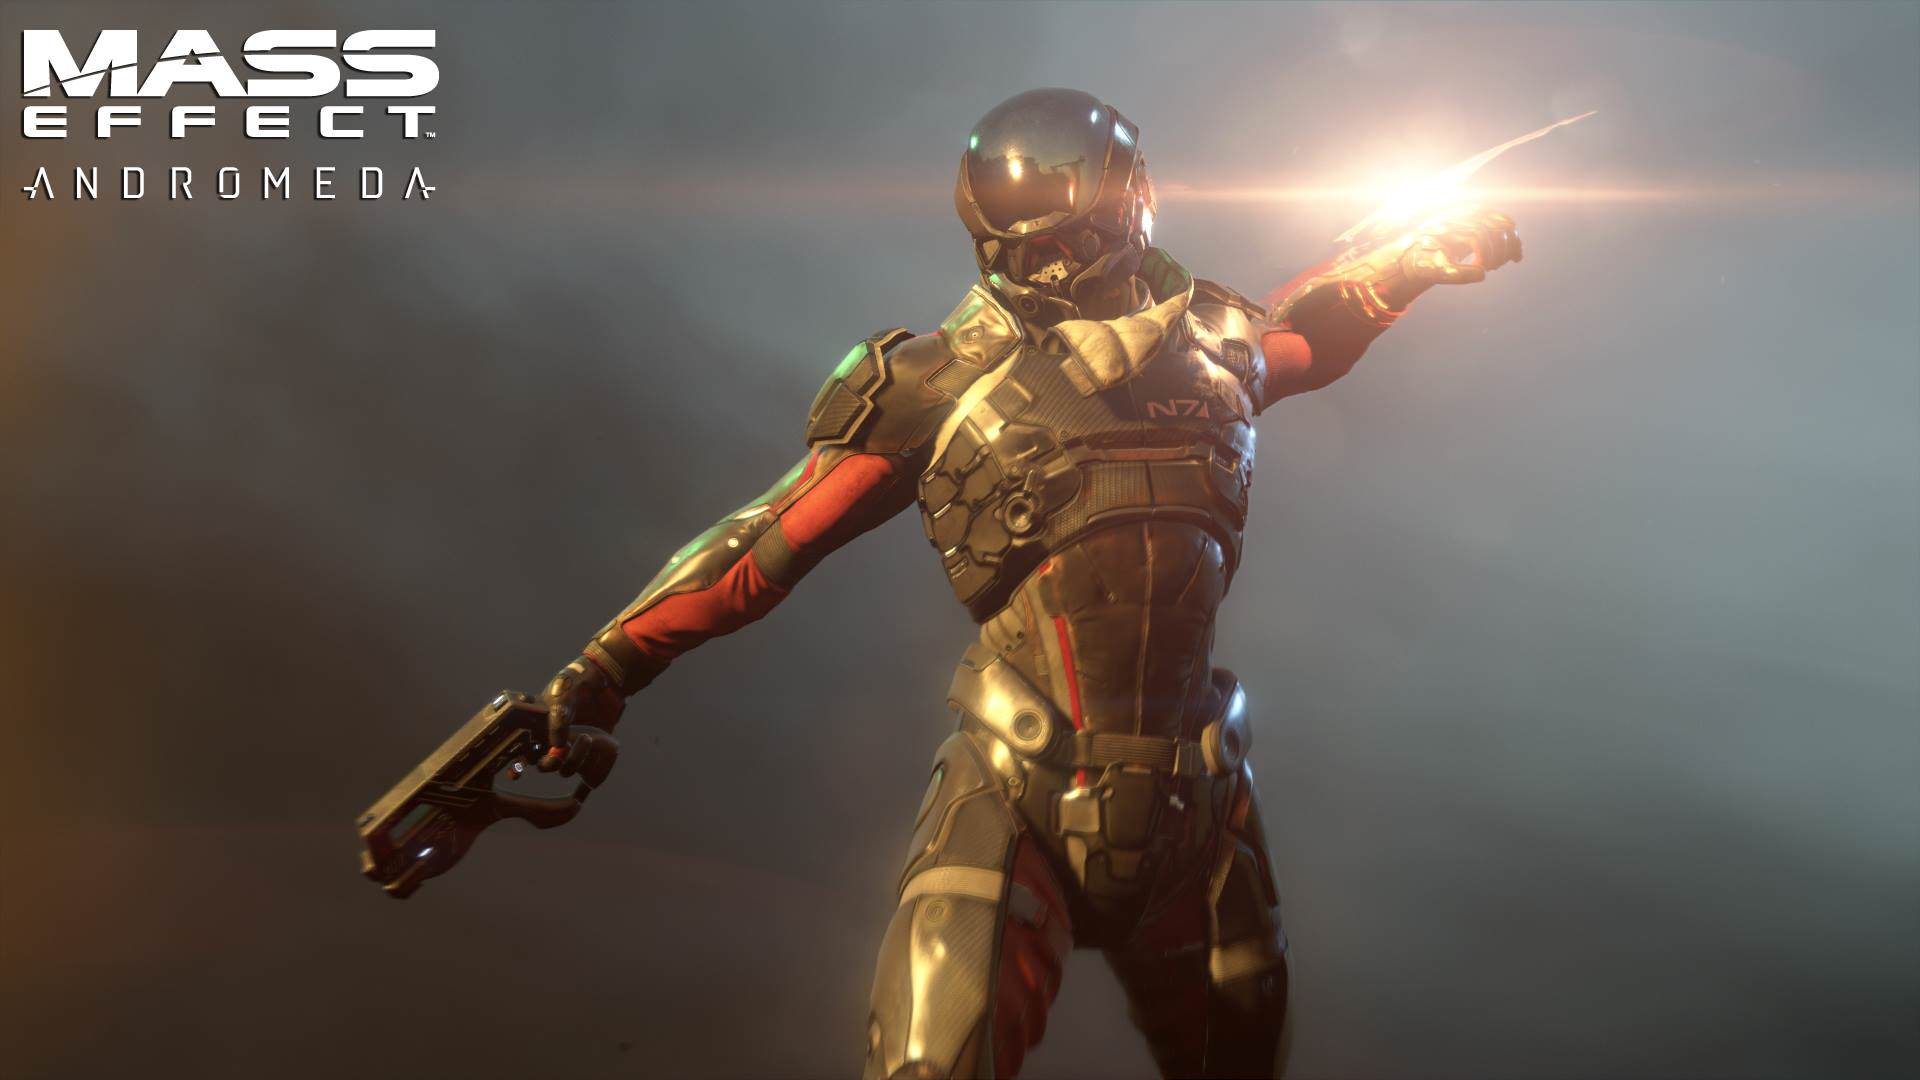 Leaked Mass Effect Andromeda Survey Holds Some Key Details mass effect andromeda e3 trailer 2